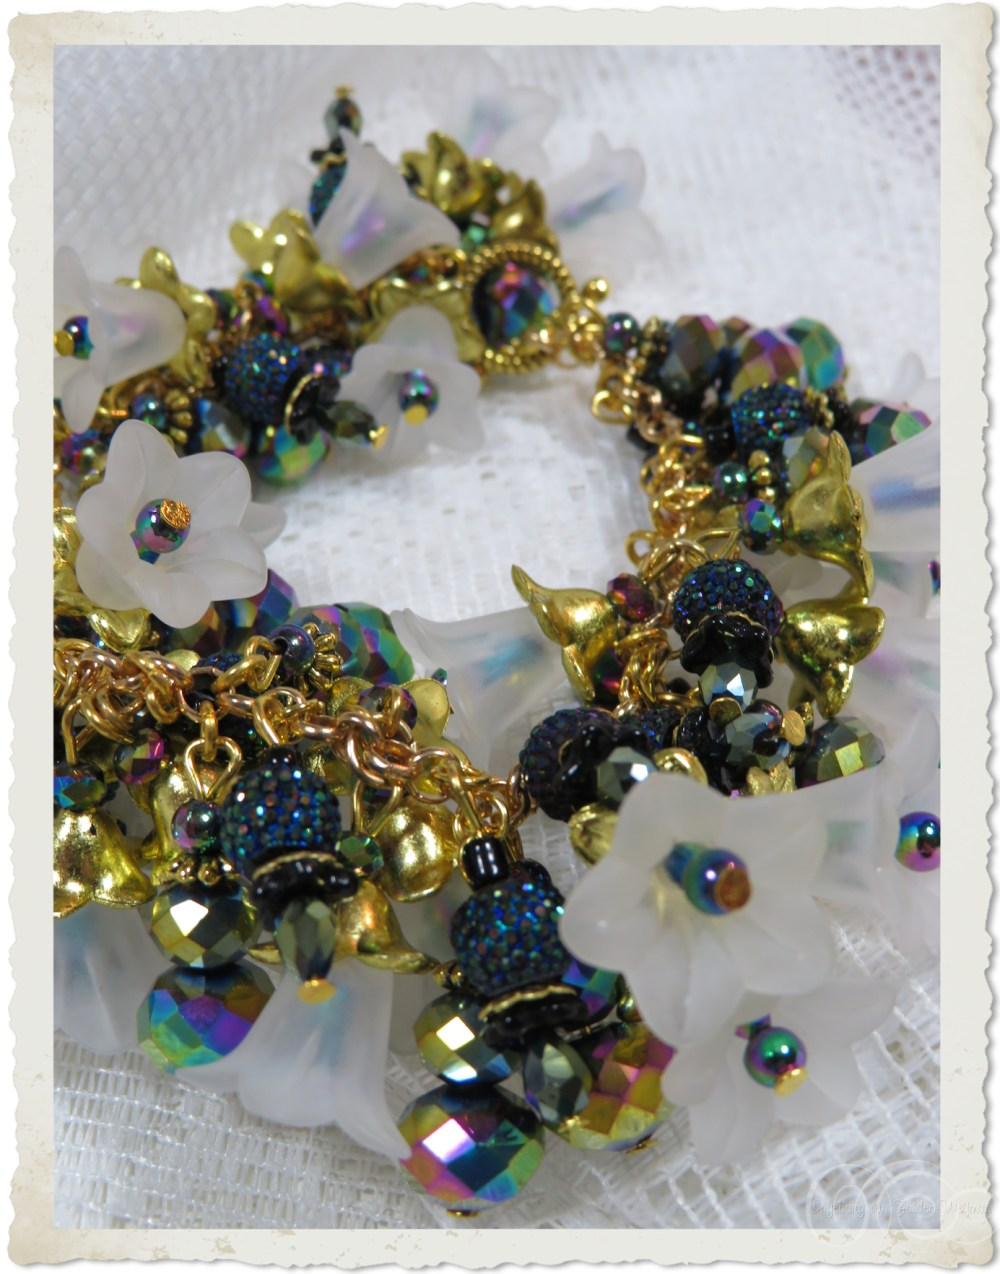 Handmade black gold flower bracelet with shiny faceted beads by Ingeborg van Zuiden